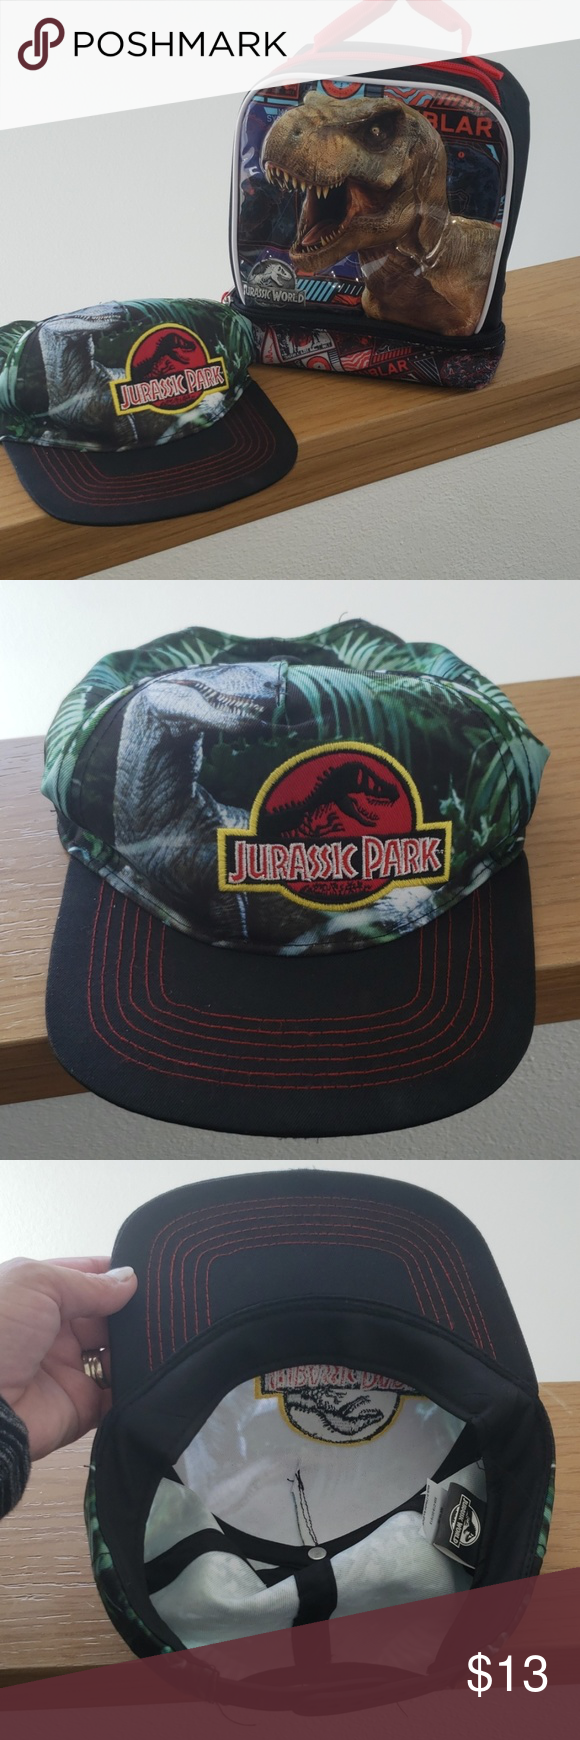 ⬇️Jurassic Hat and Lunch box GUC, Jurassic Park/World Hat and lunchox Accessories Bags #jurassicparkworld